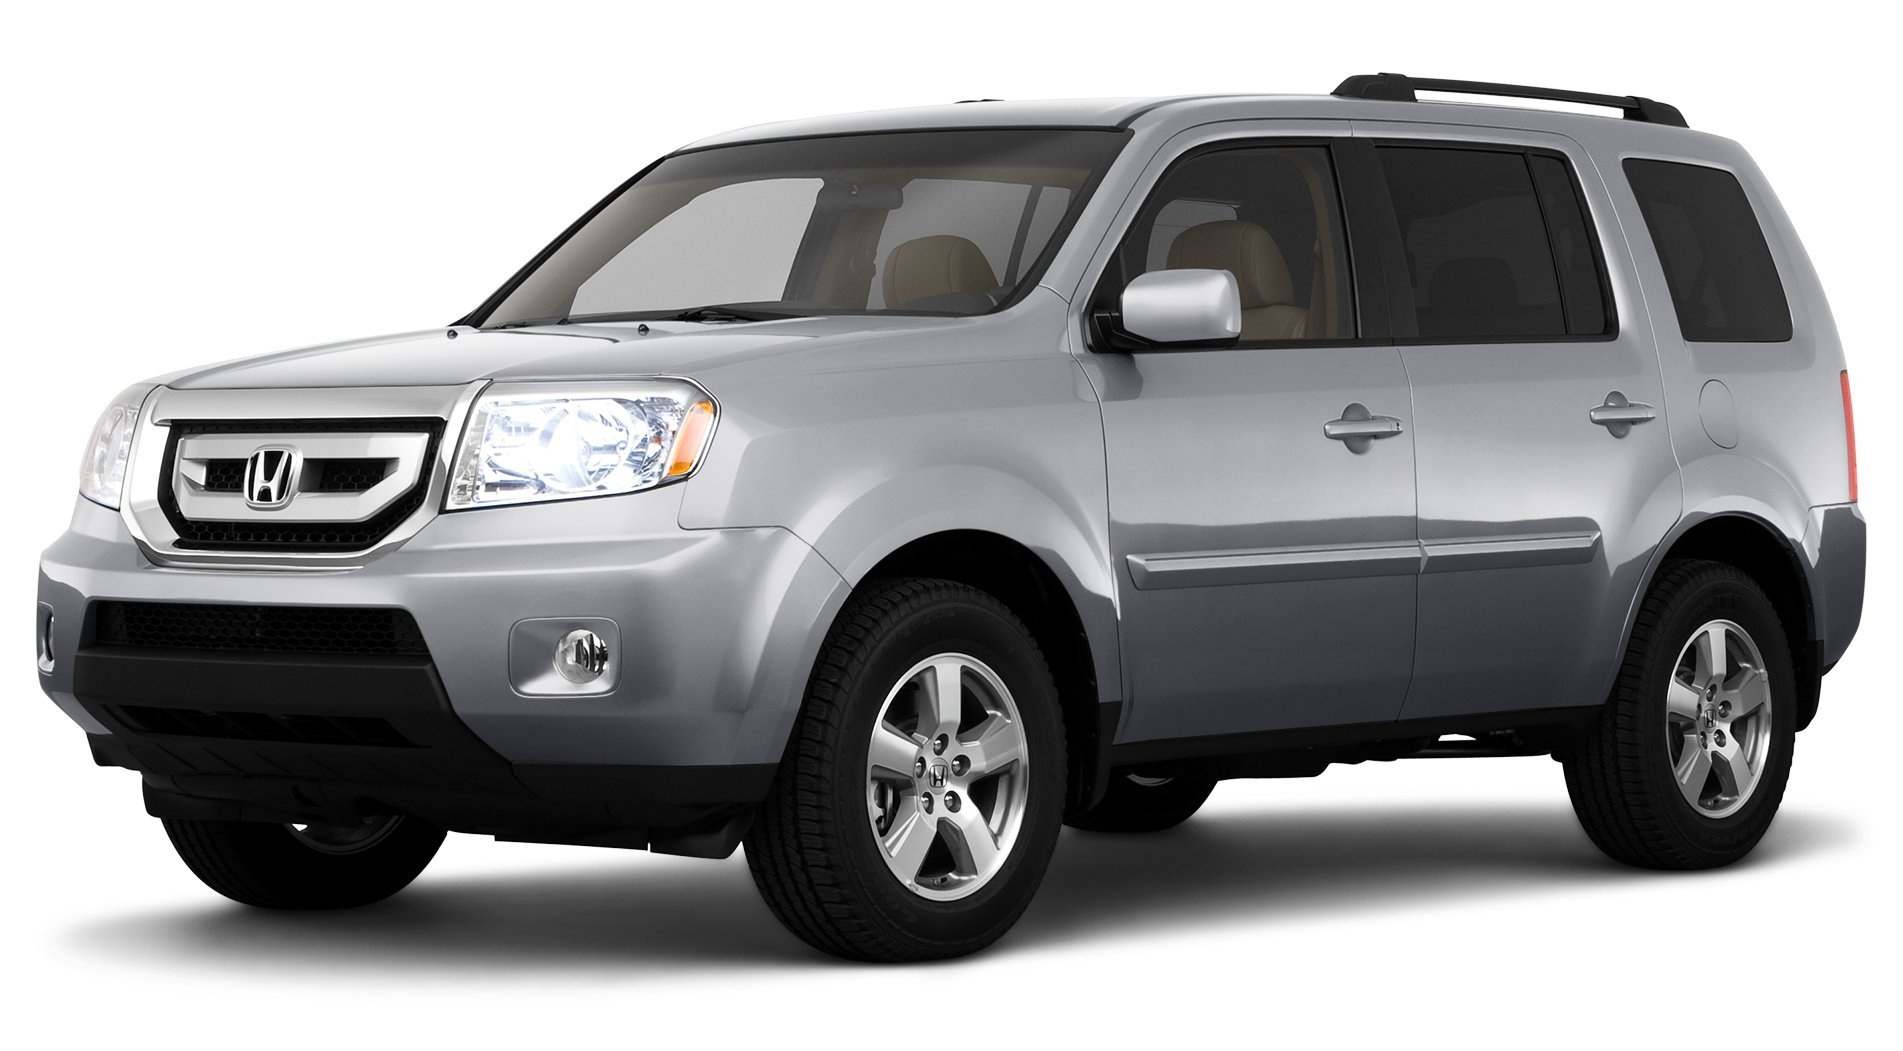 2011 honda pilot reviews images and specs vehicles. Black Bedroom Furniture Sets. Home Design Ideas